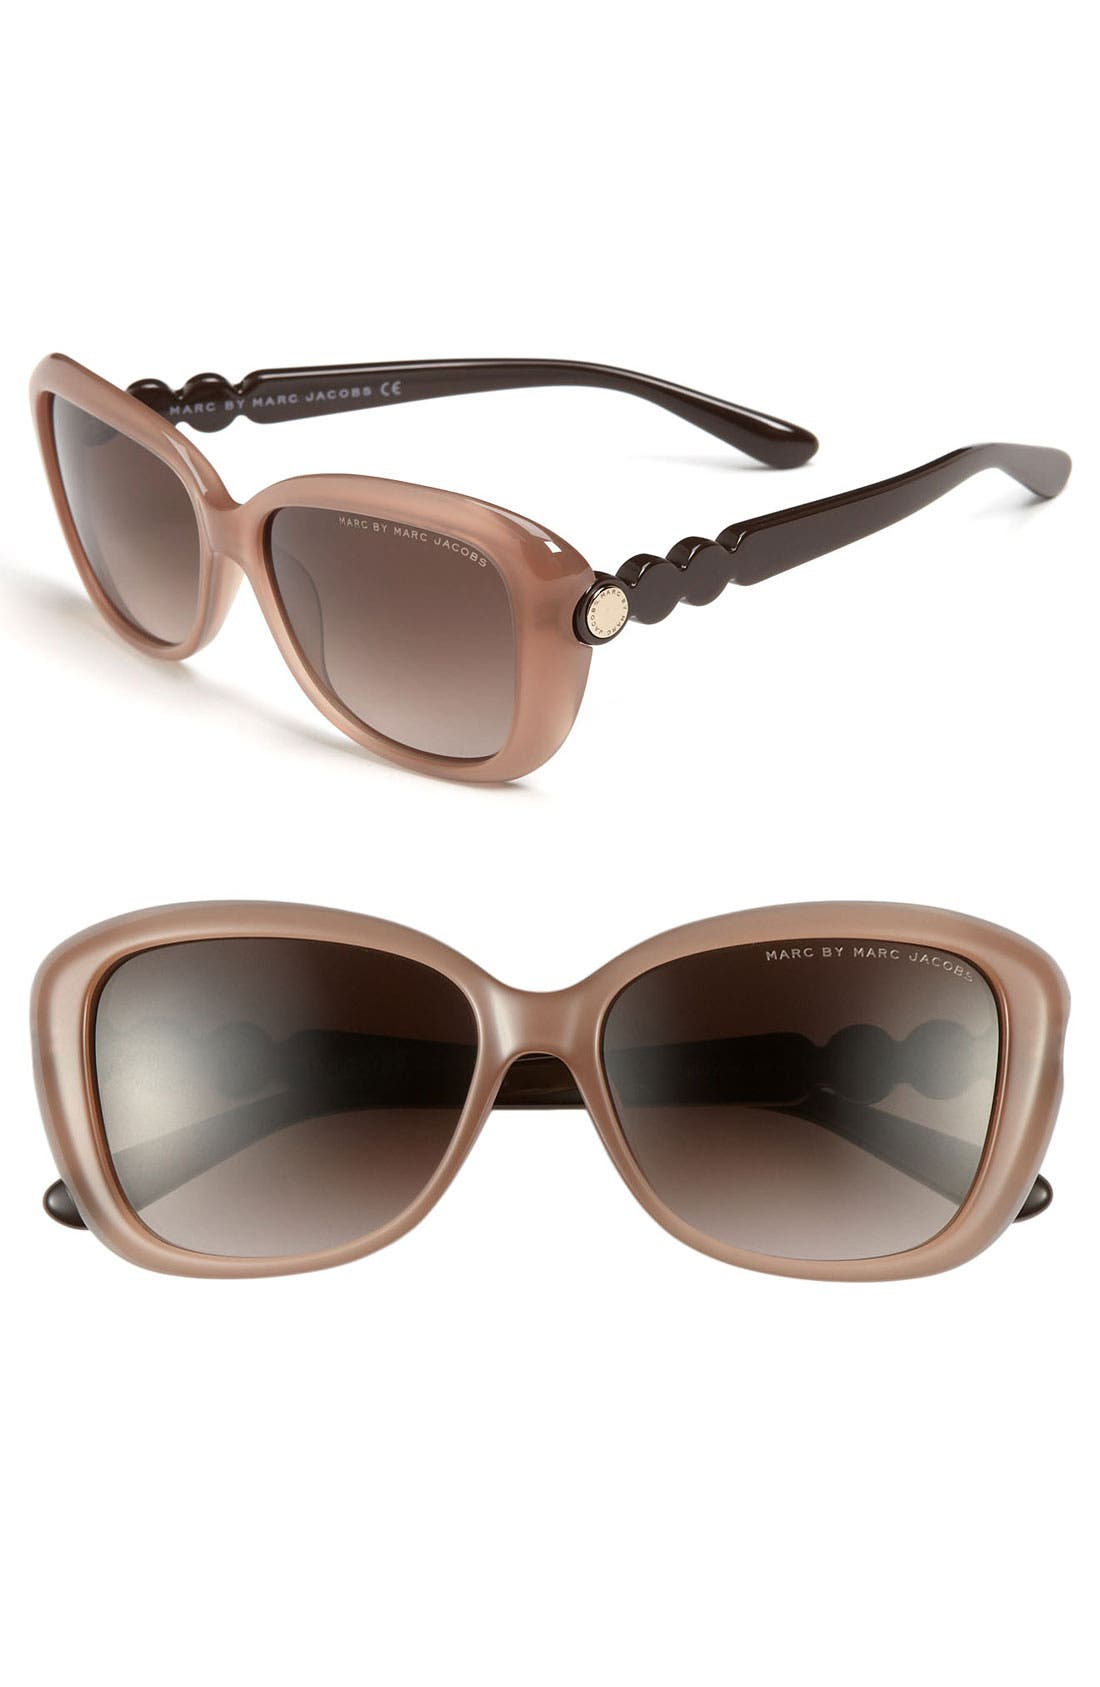 Main Image - MARC BY MARC JACOBS 54mm Sunglasses